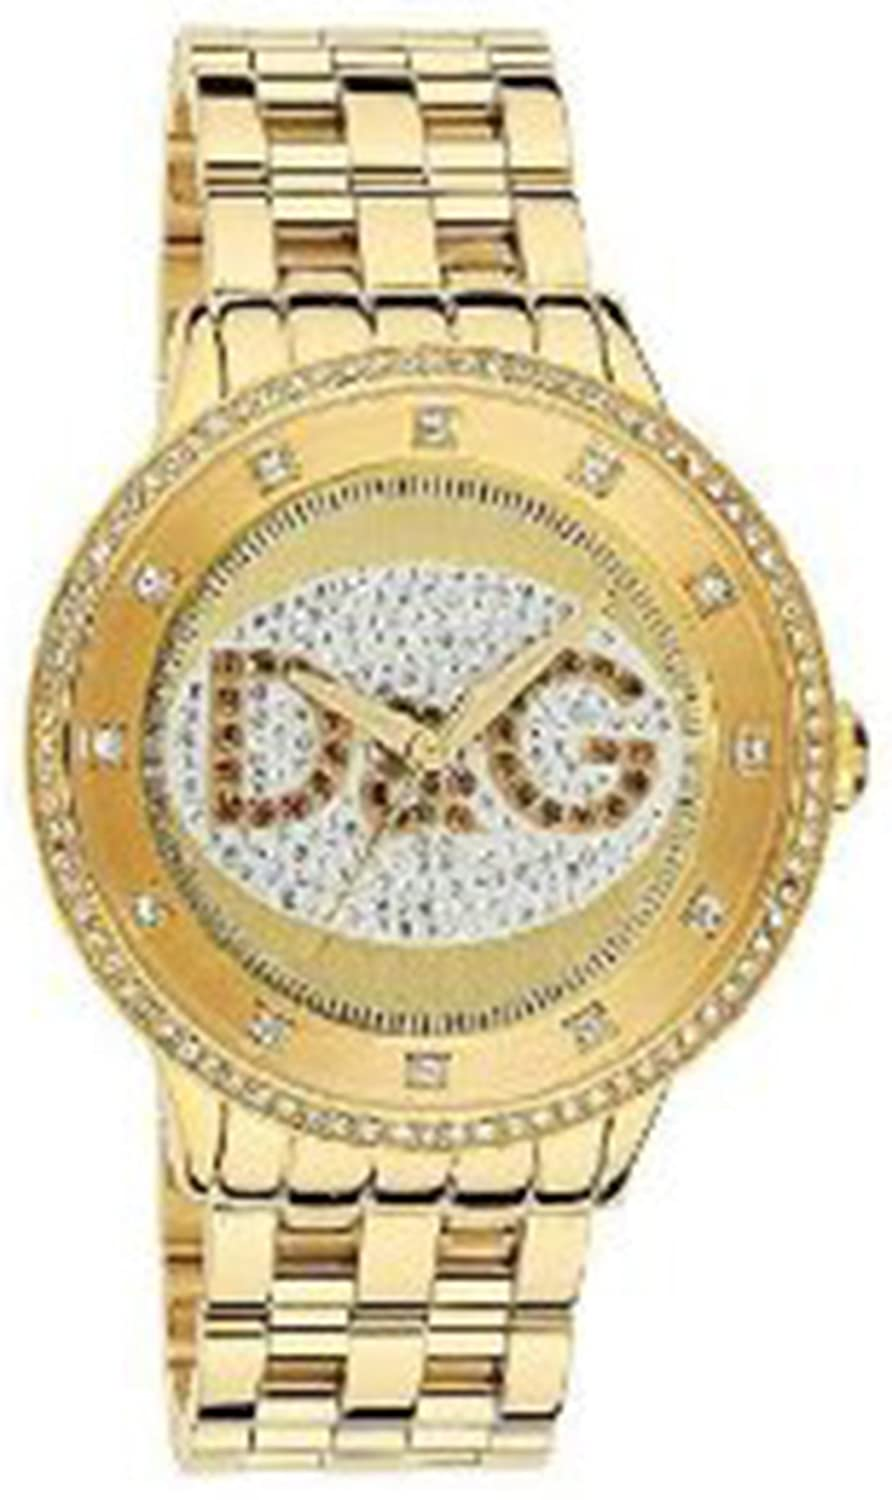 D&G DW0379 Watch Prime Time Big IPG Gold Dial With Brown Logo: Dolce &  Gabbana: Amazon.co.uk: Watches